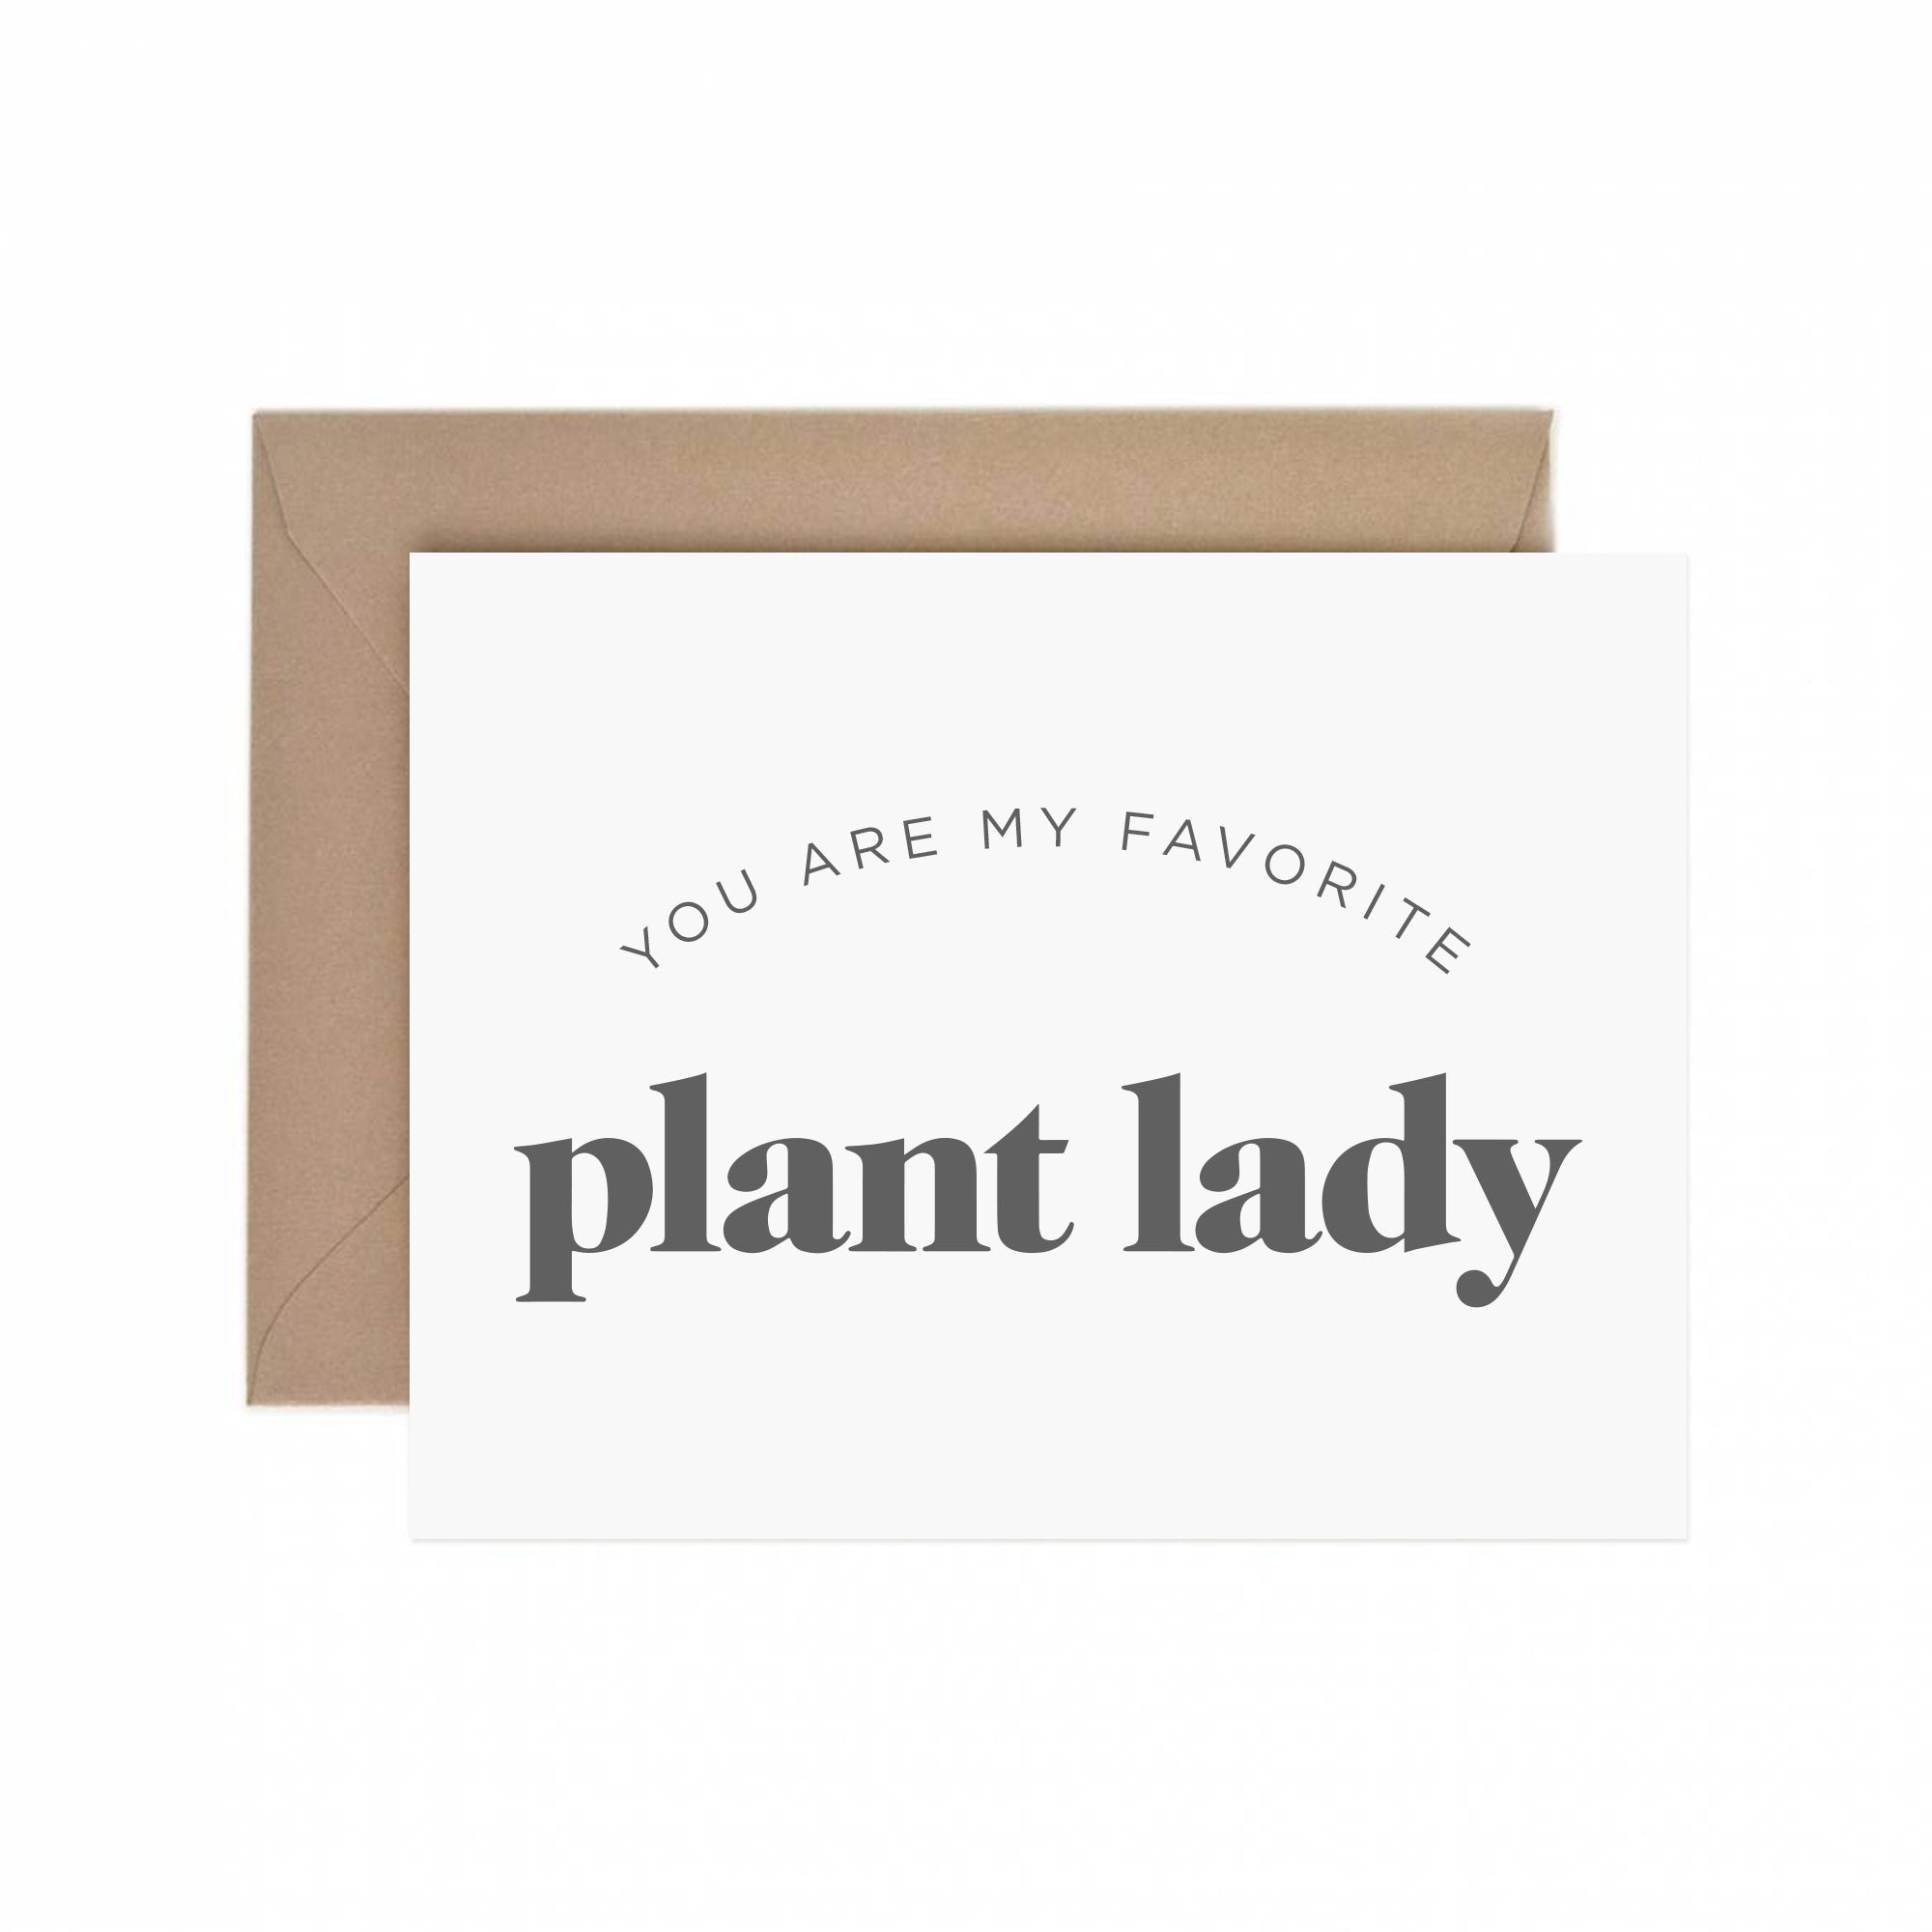 Favorite Plant Lady Greeting Card